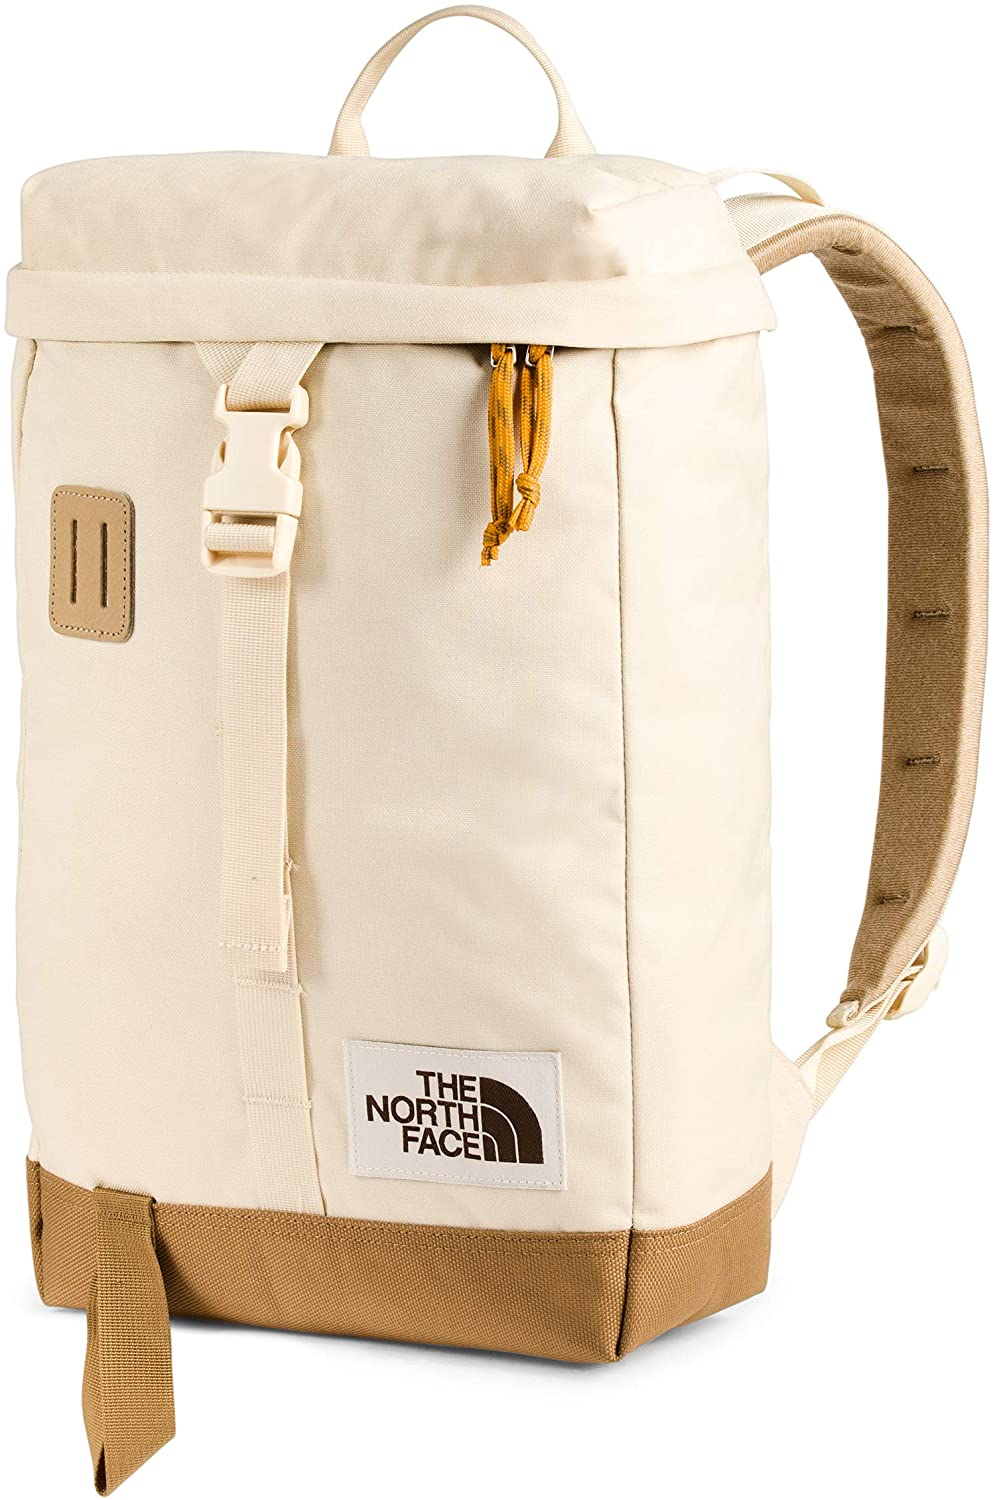 The North Face Top Loader Commuter Laptop Backpack